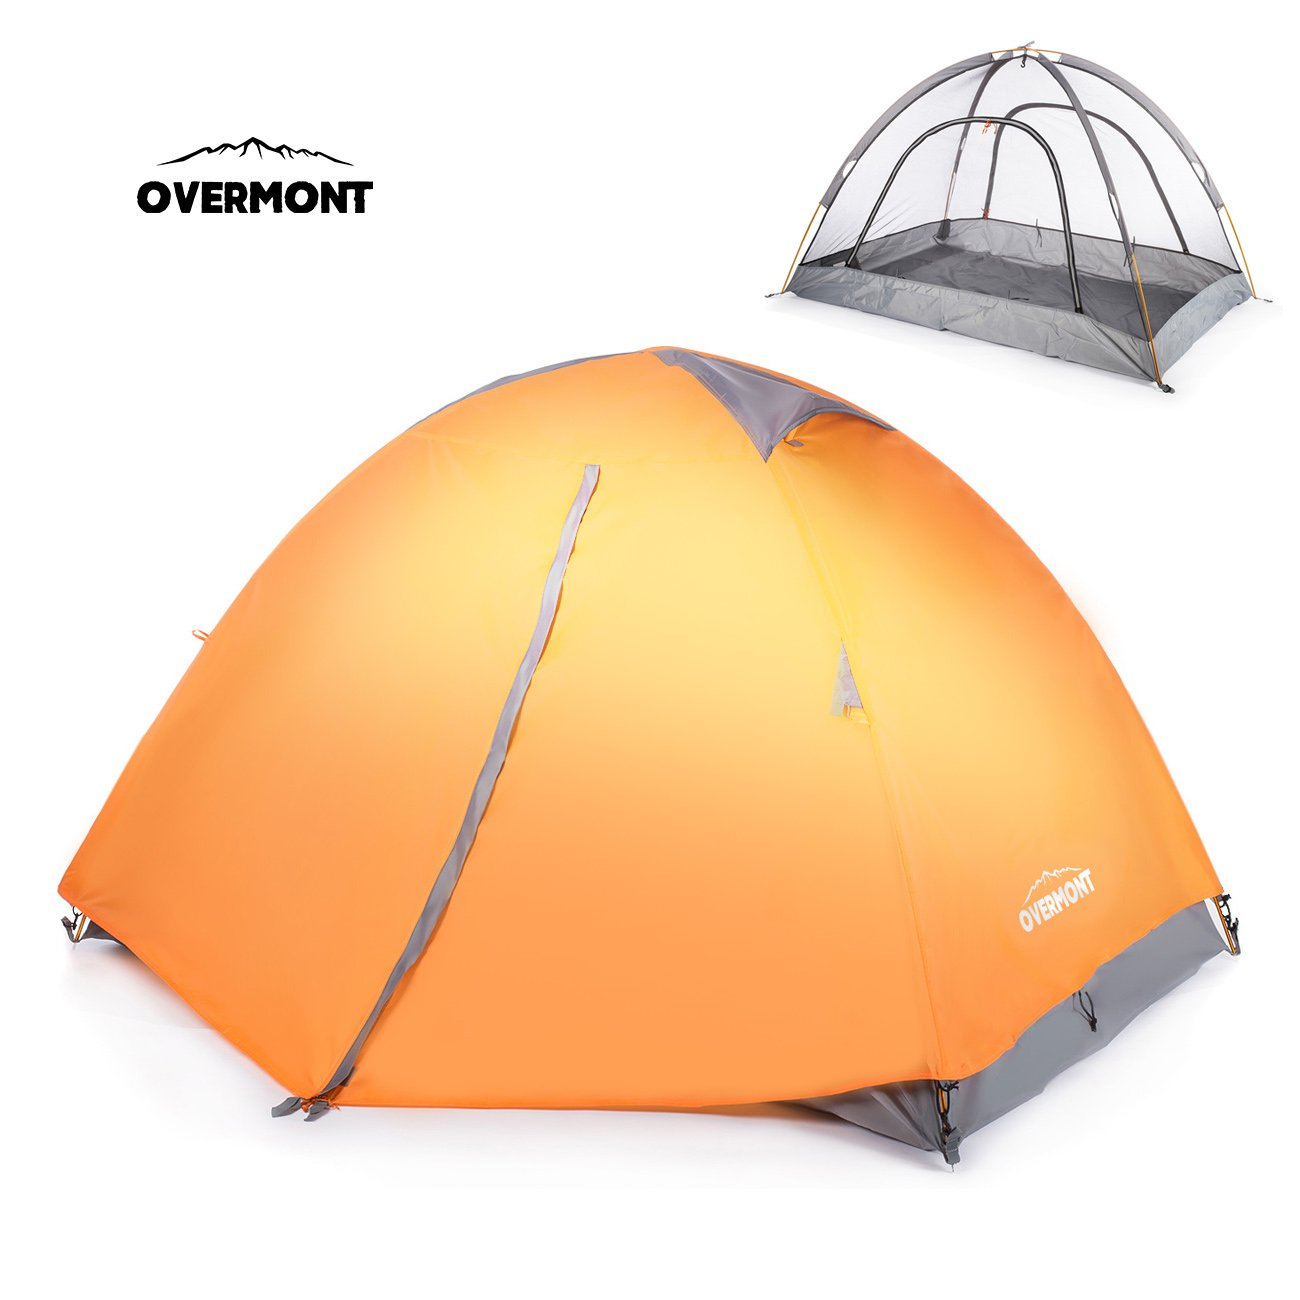 Overmont 2 Person Camping Tent Compact Portable Folding Waterproof Double Layer for Outdoor Hiking Backpacking Climbing Travel Green 210*140*115cm